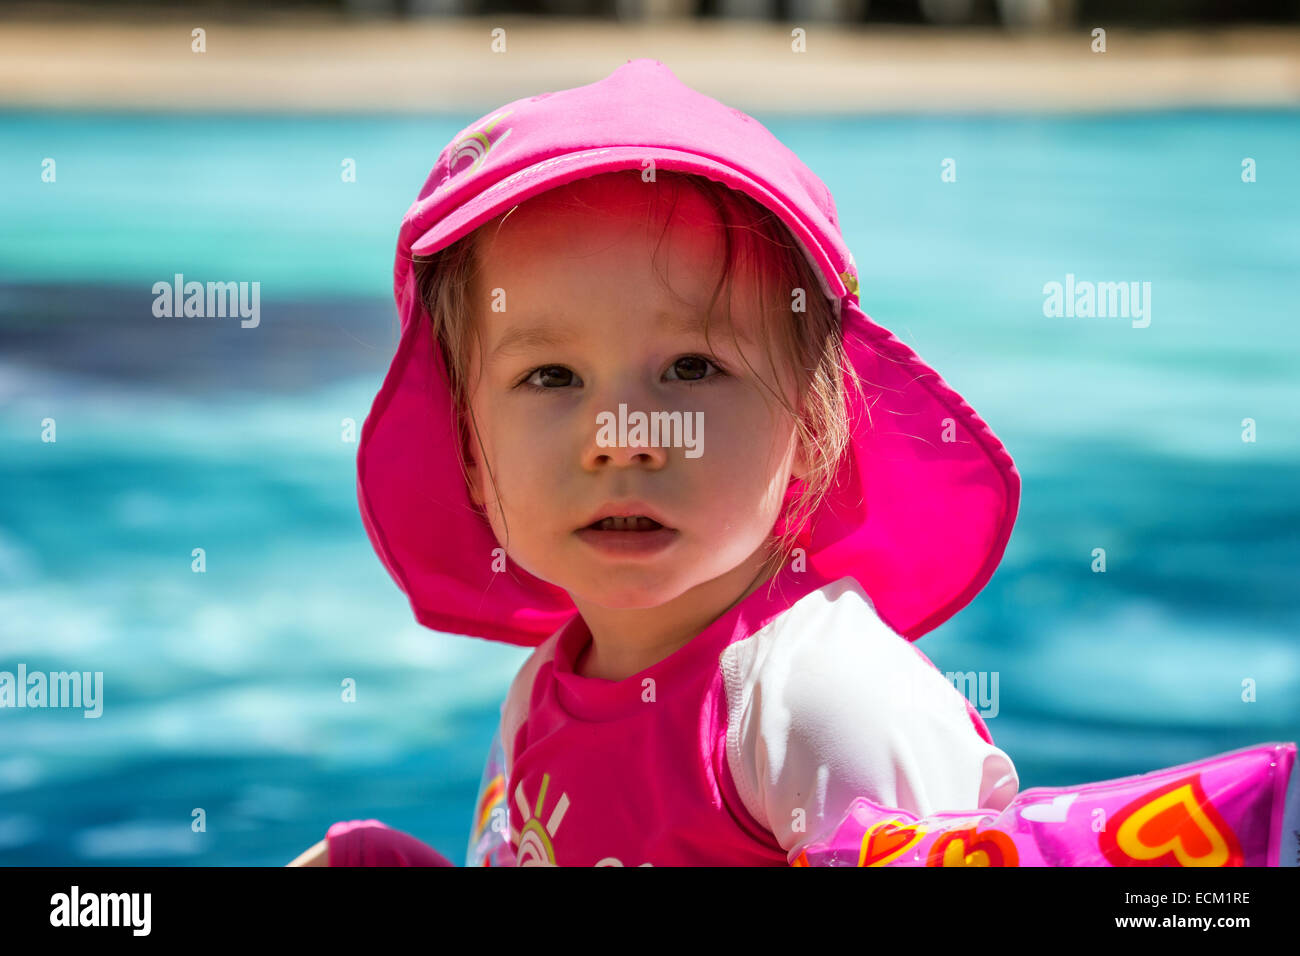 Small toddler girl by the swimming pool wearing pink UV protection swimsuit looking at camera. - Stock Image